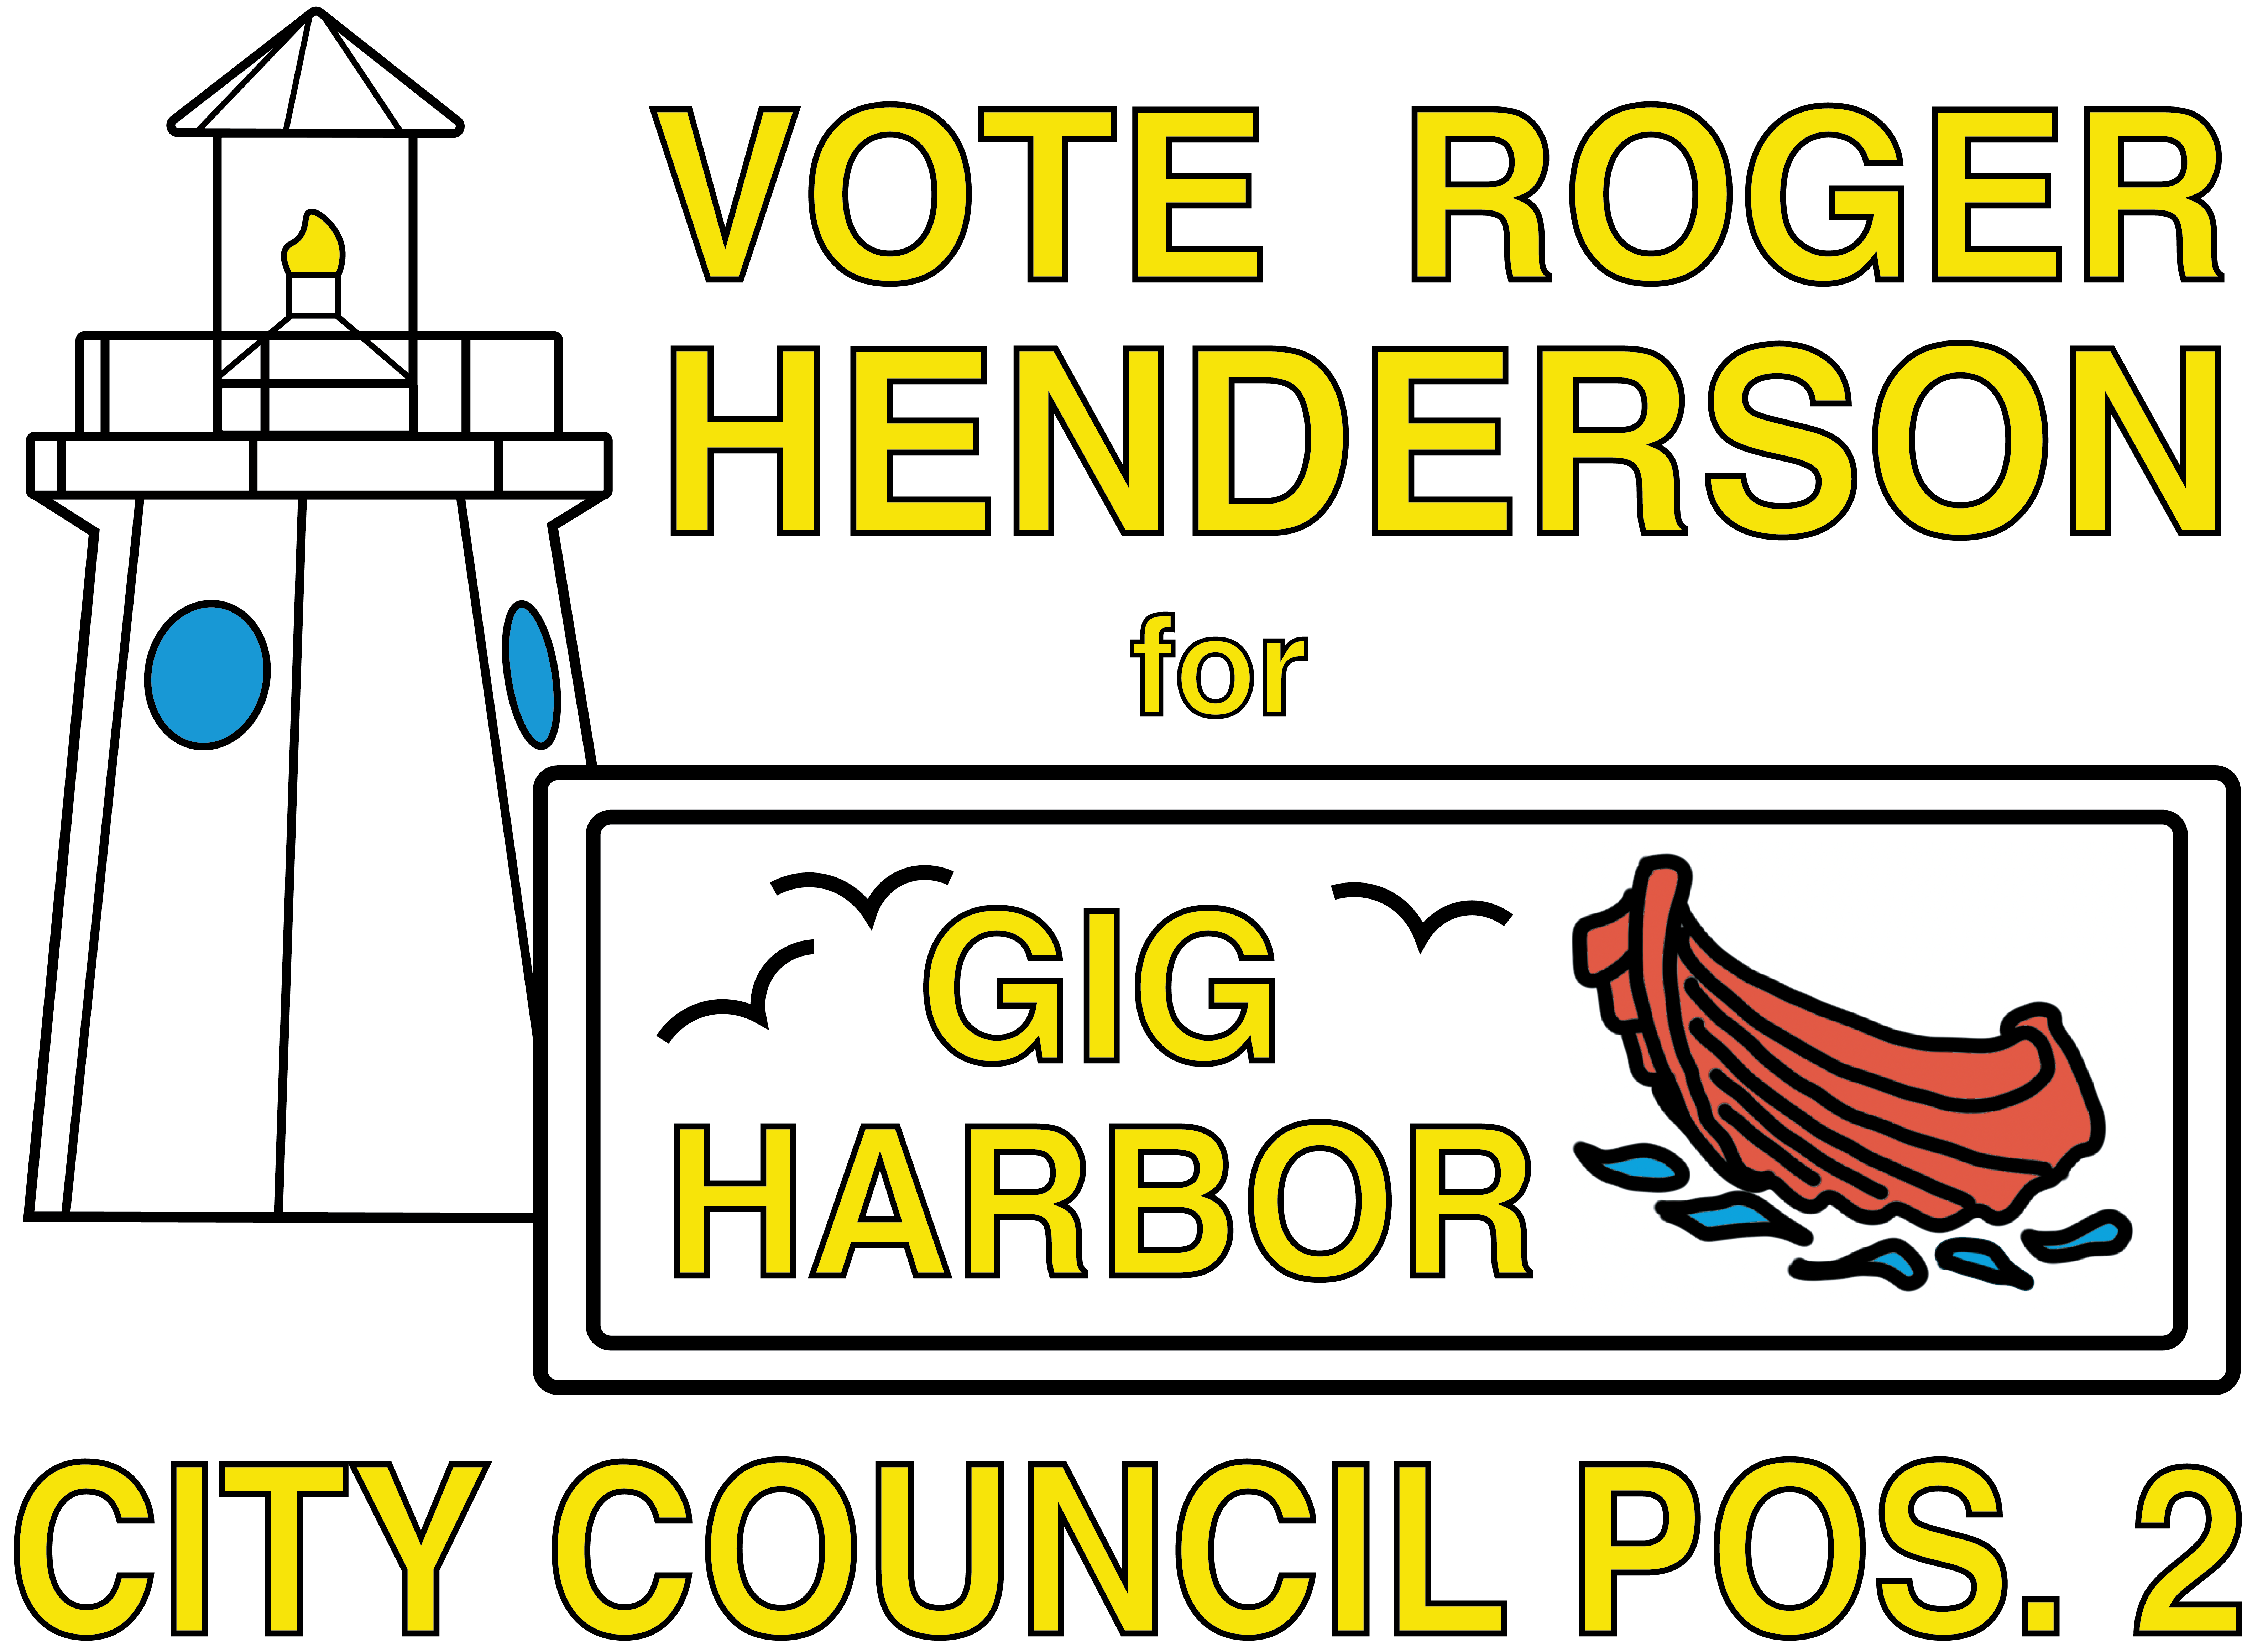 Vote Roger Henderson for Gig Harbor City Council